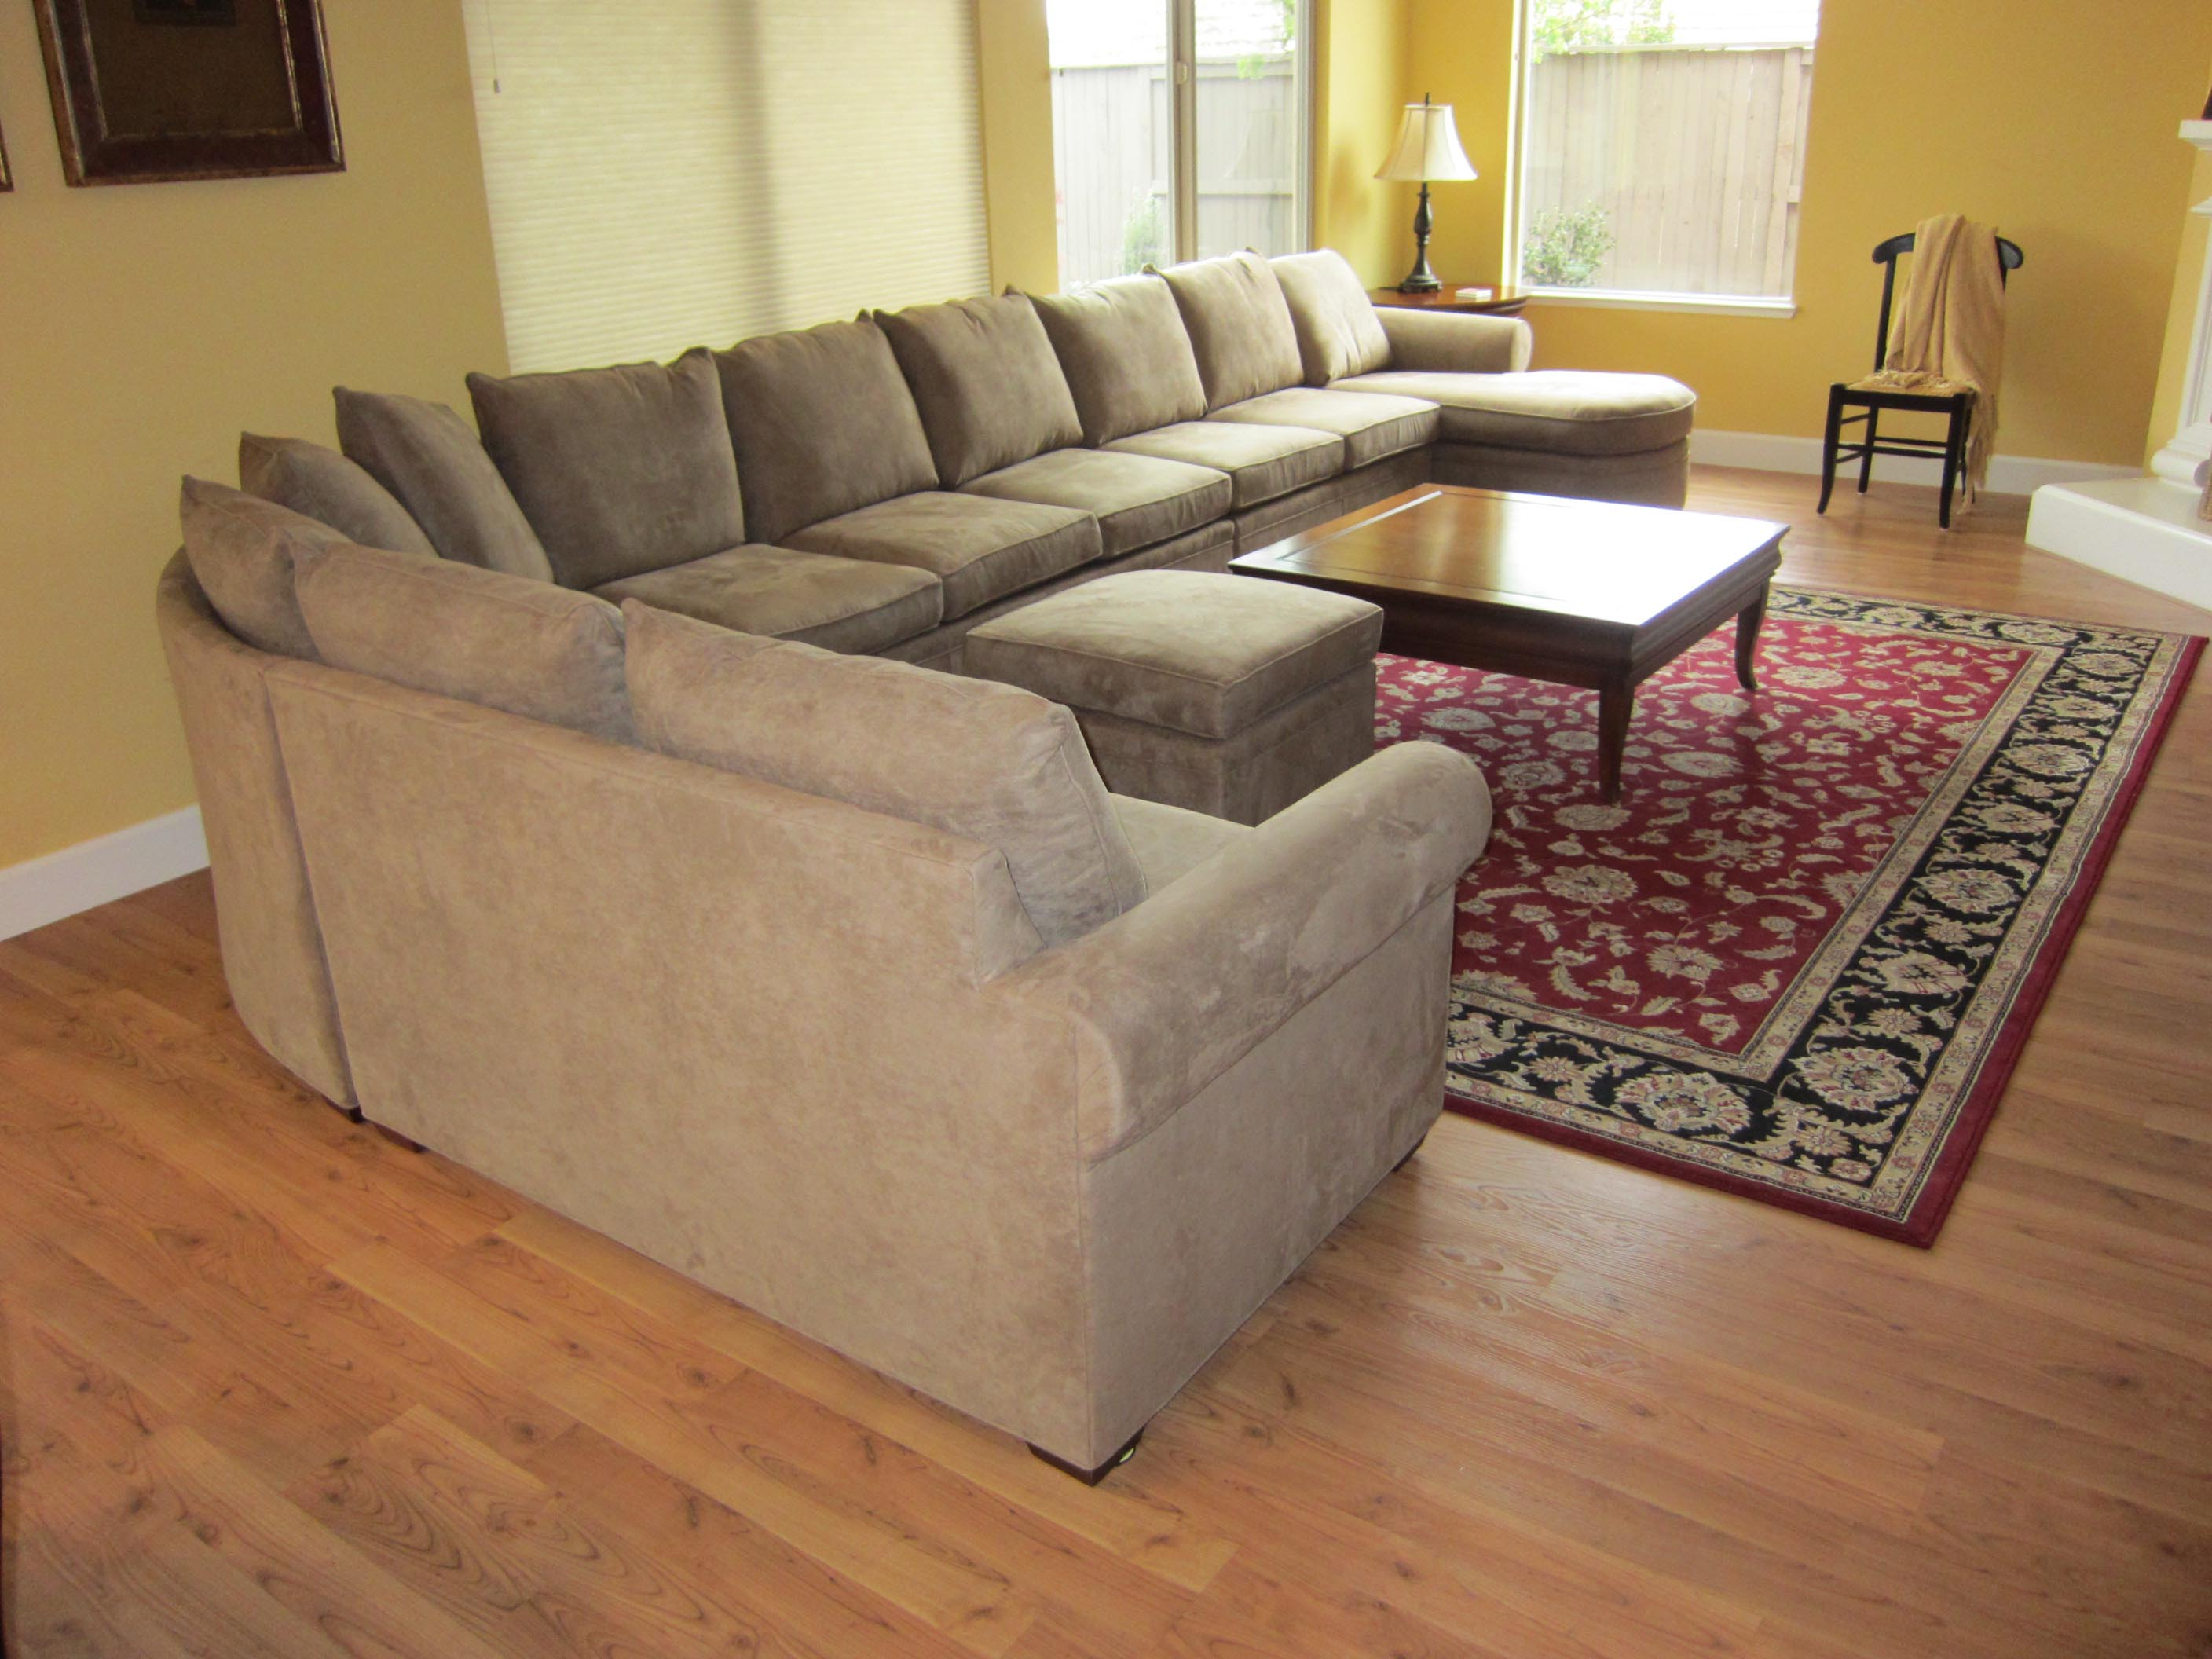 Carolina Chair Testimonials Reviews Happy Customers 2012 Custom Furniture Sectional Sofas : extra long sectional - Sectionals, Sofas & Couches